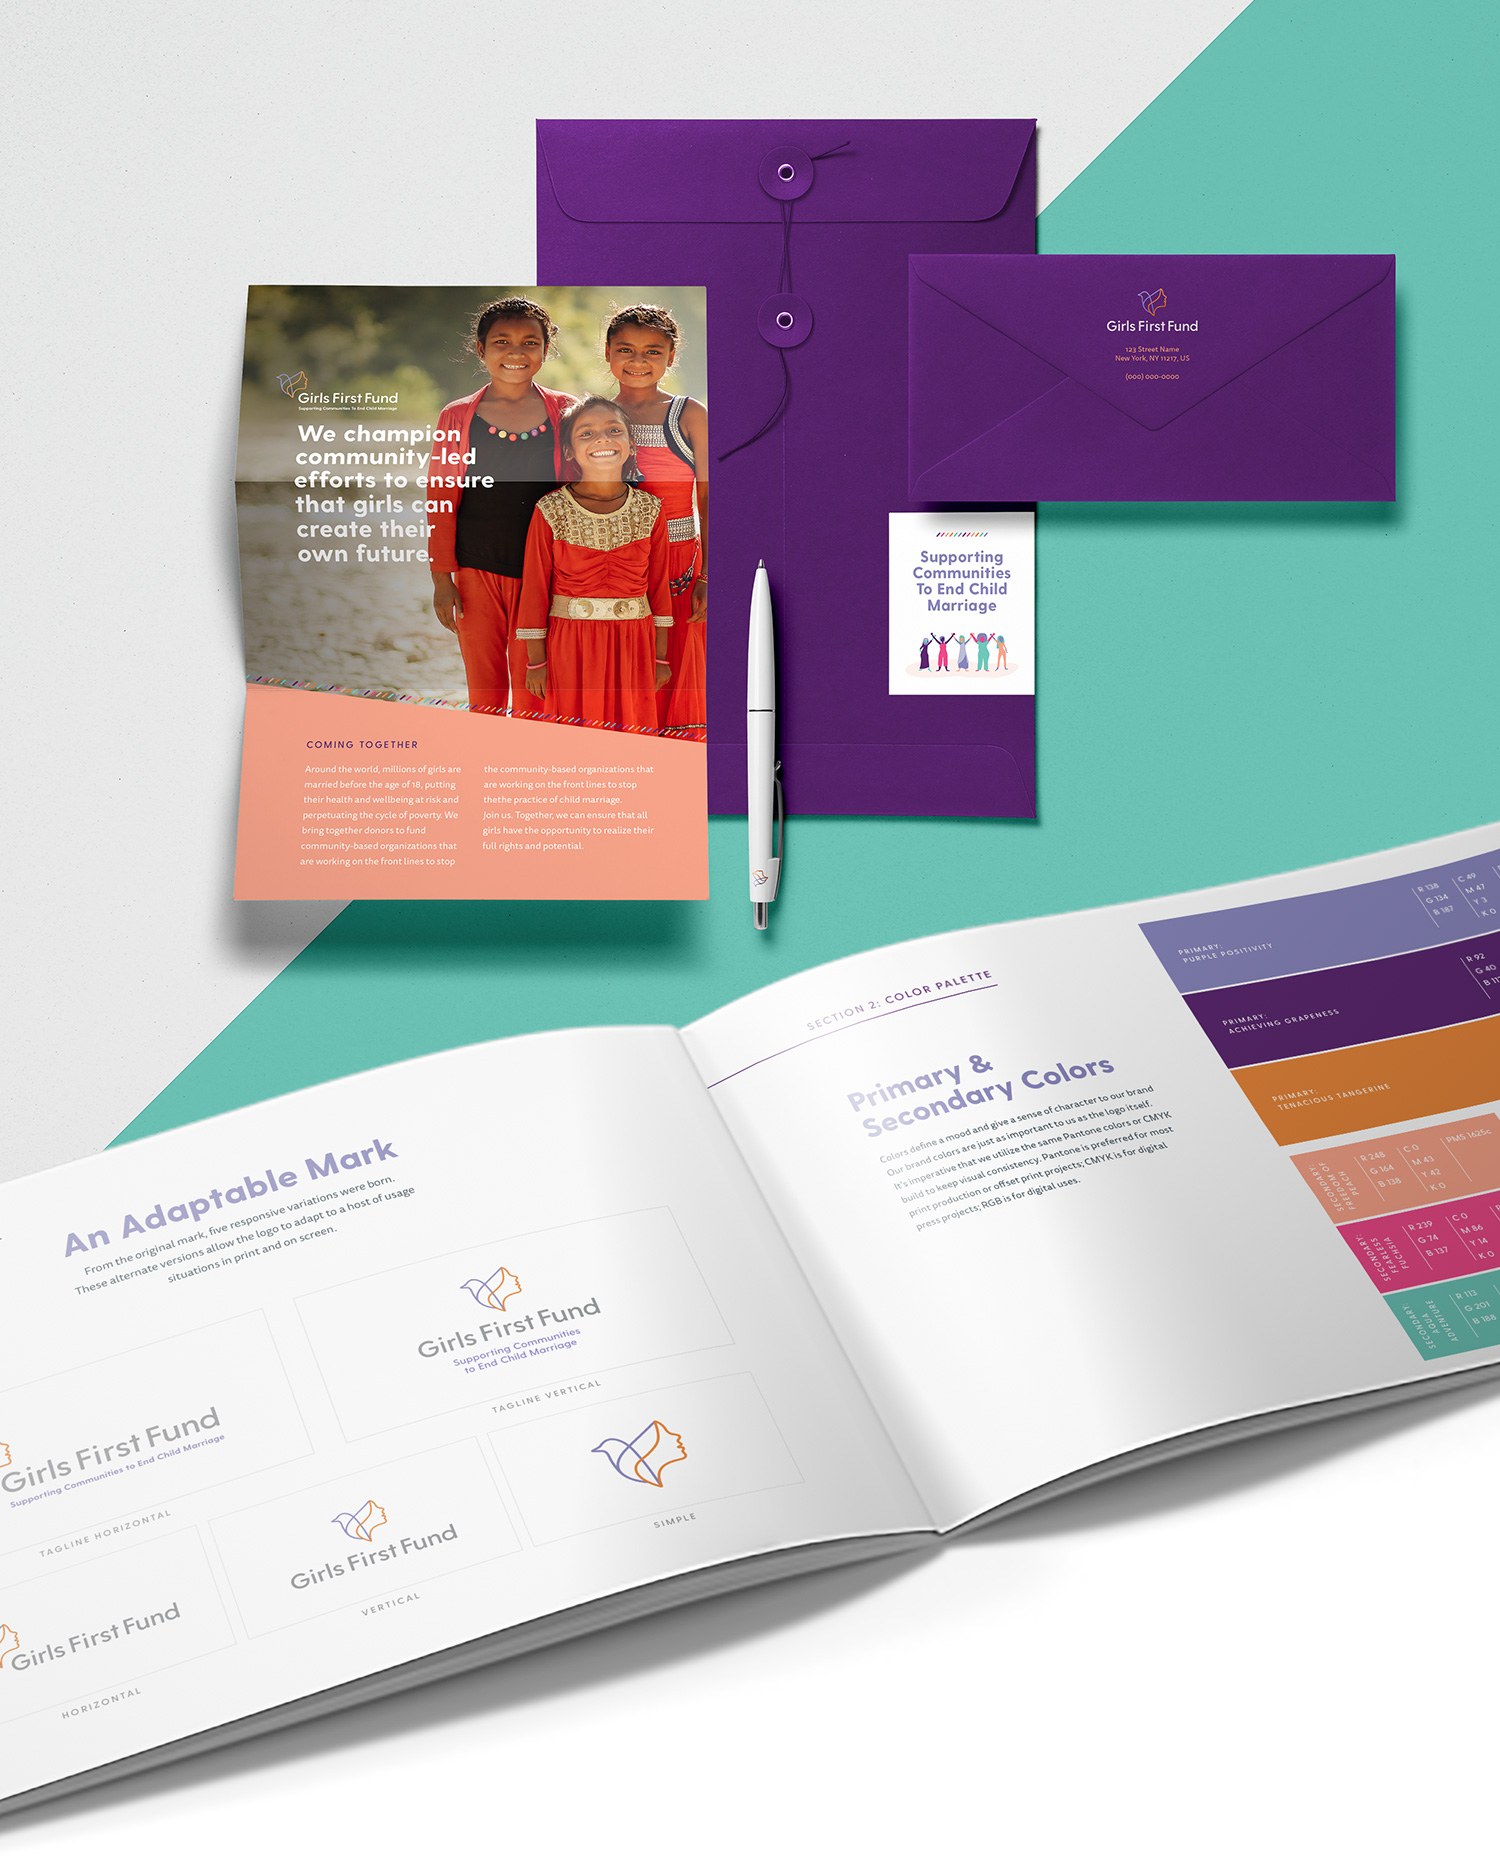 Custom Branding Strategy and Design shown on stationary and brand book for Philadelphia nonprofit